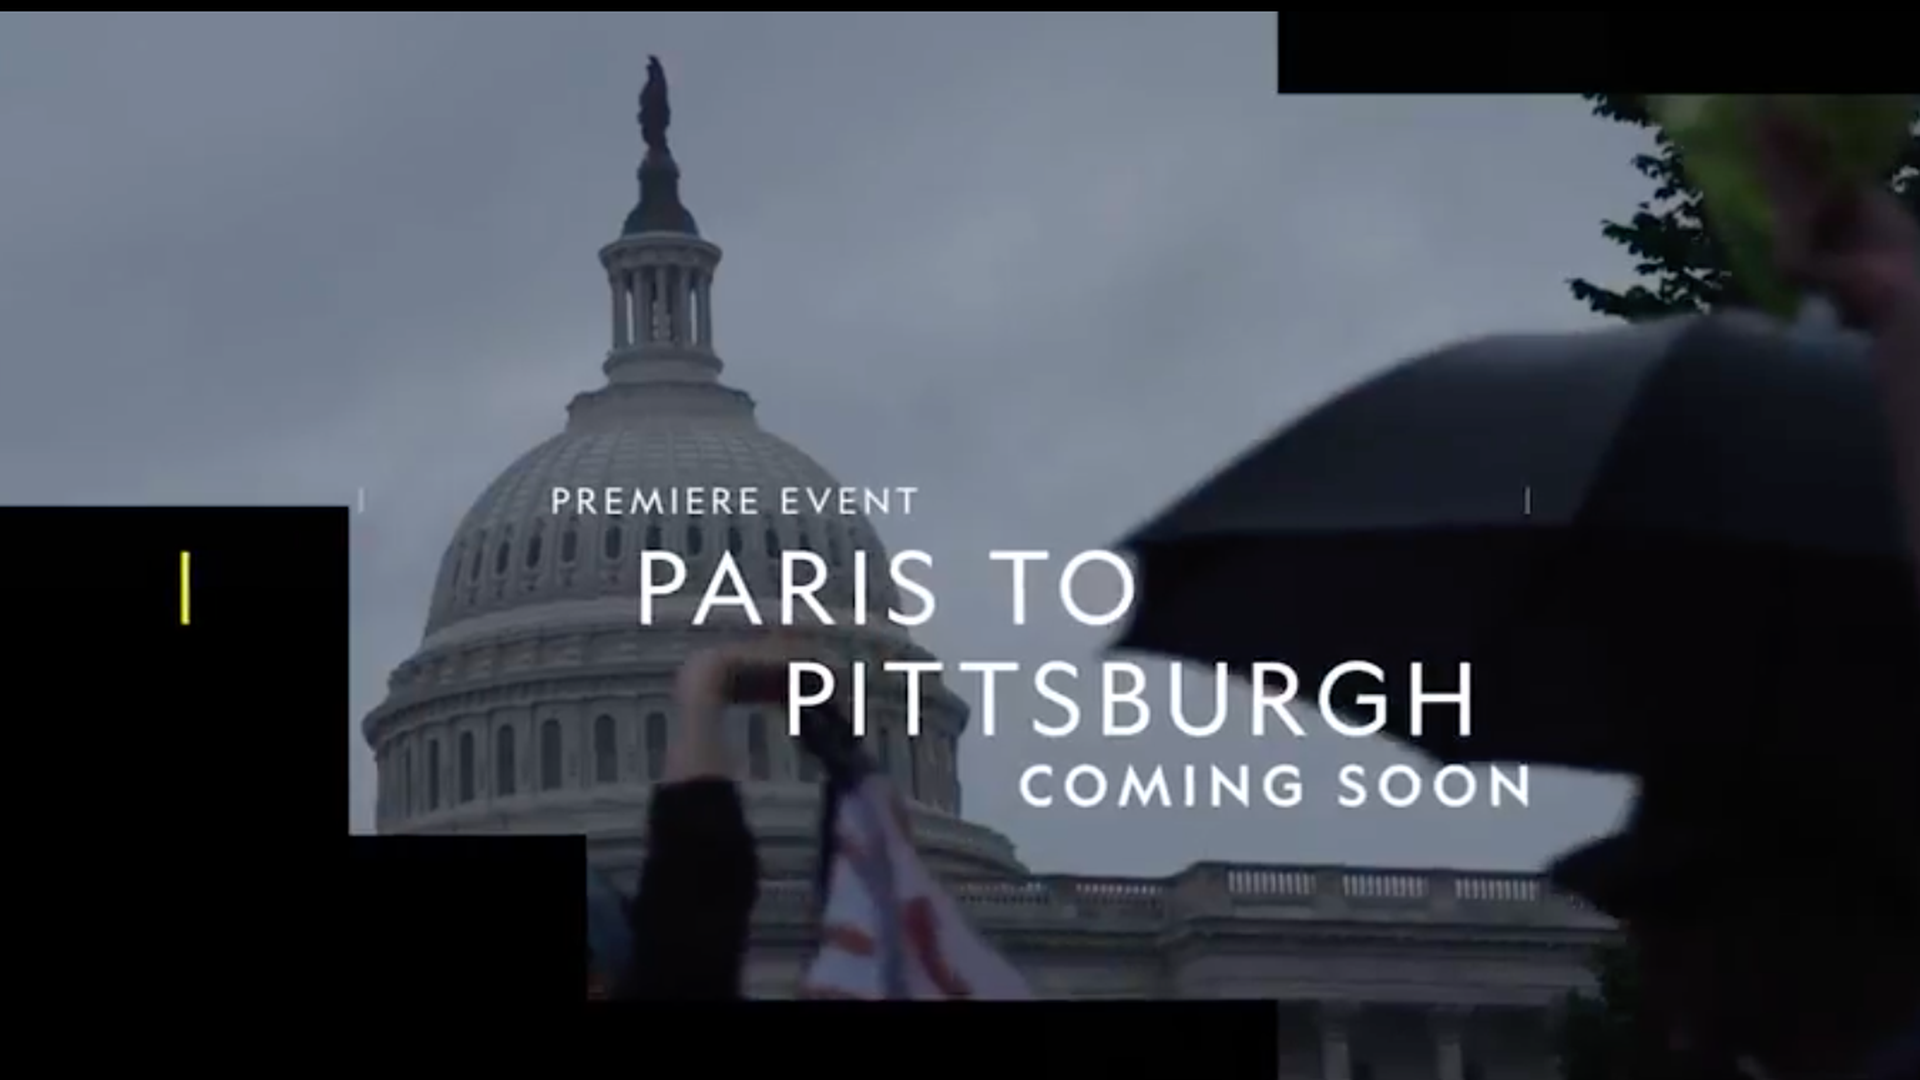 Screen shot of the title of the film, Paris to Pittsburgh